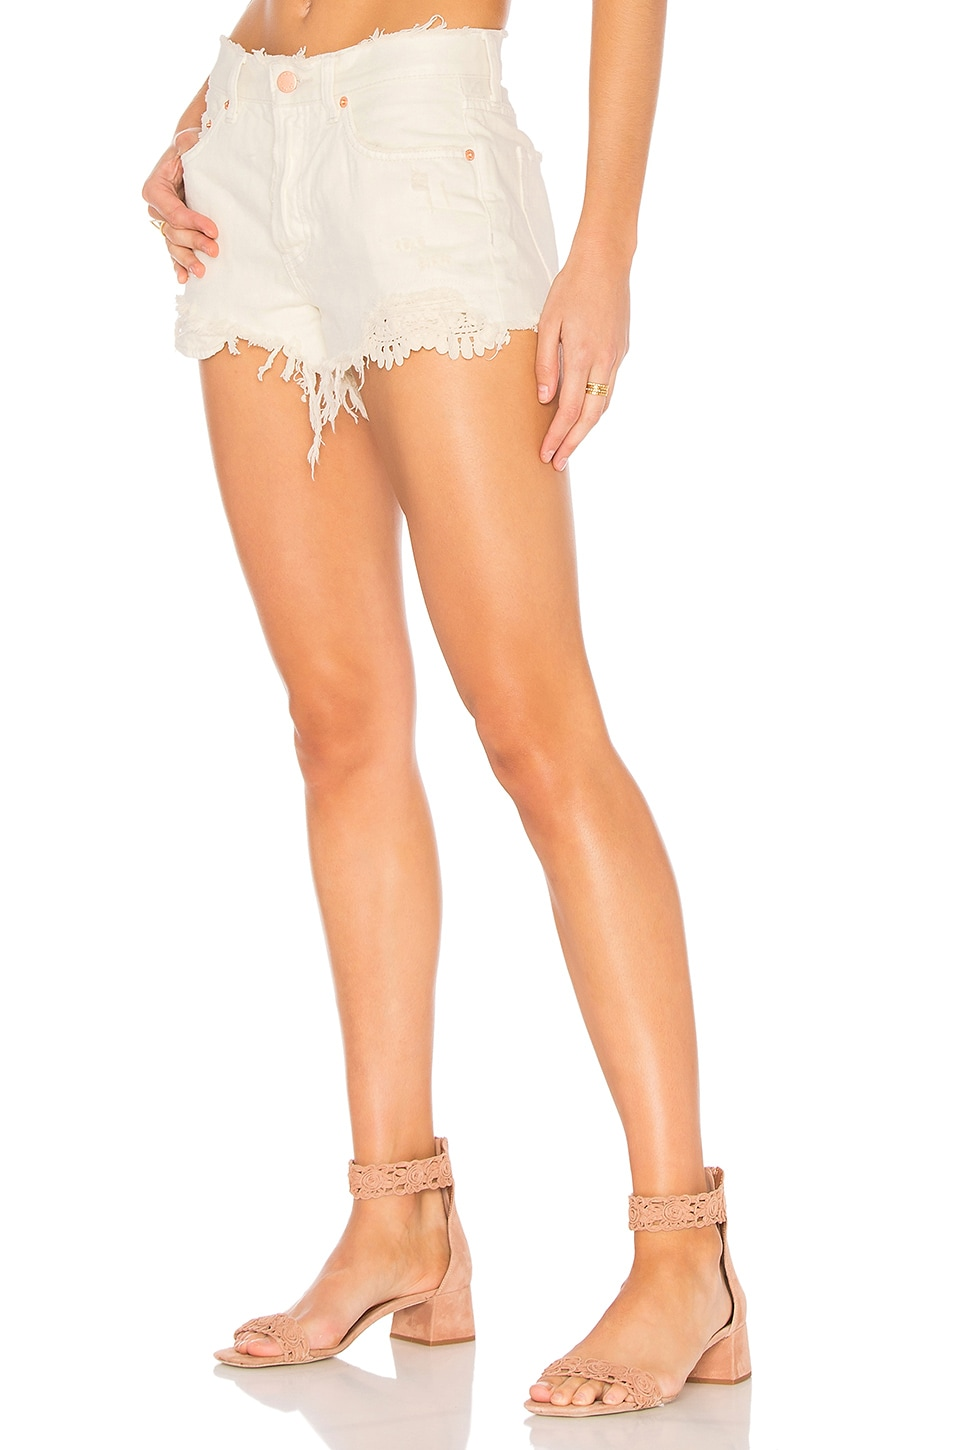 Daisy Chain Lace Short by Free People